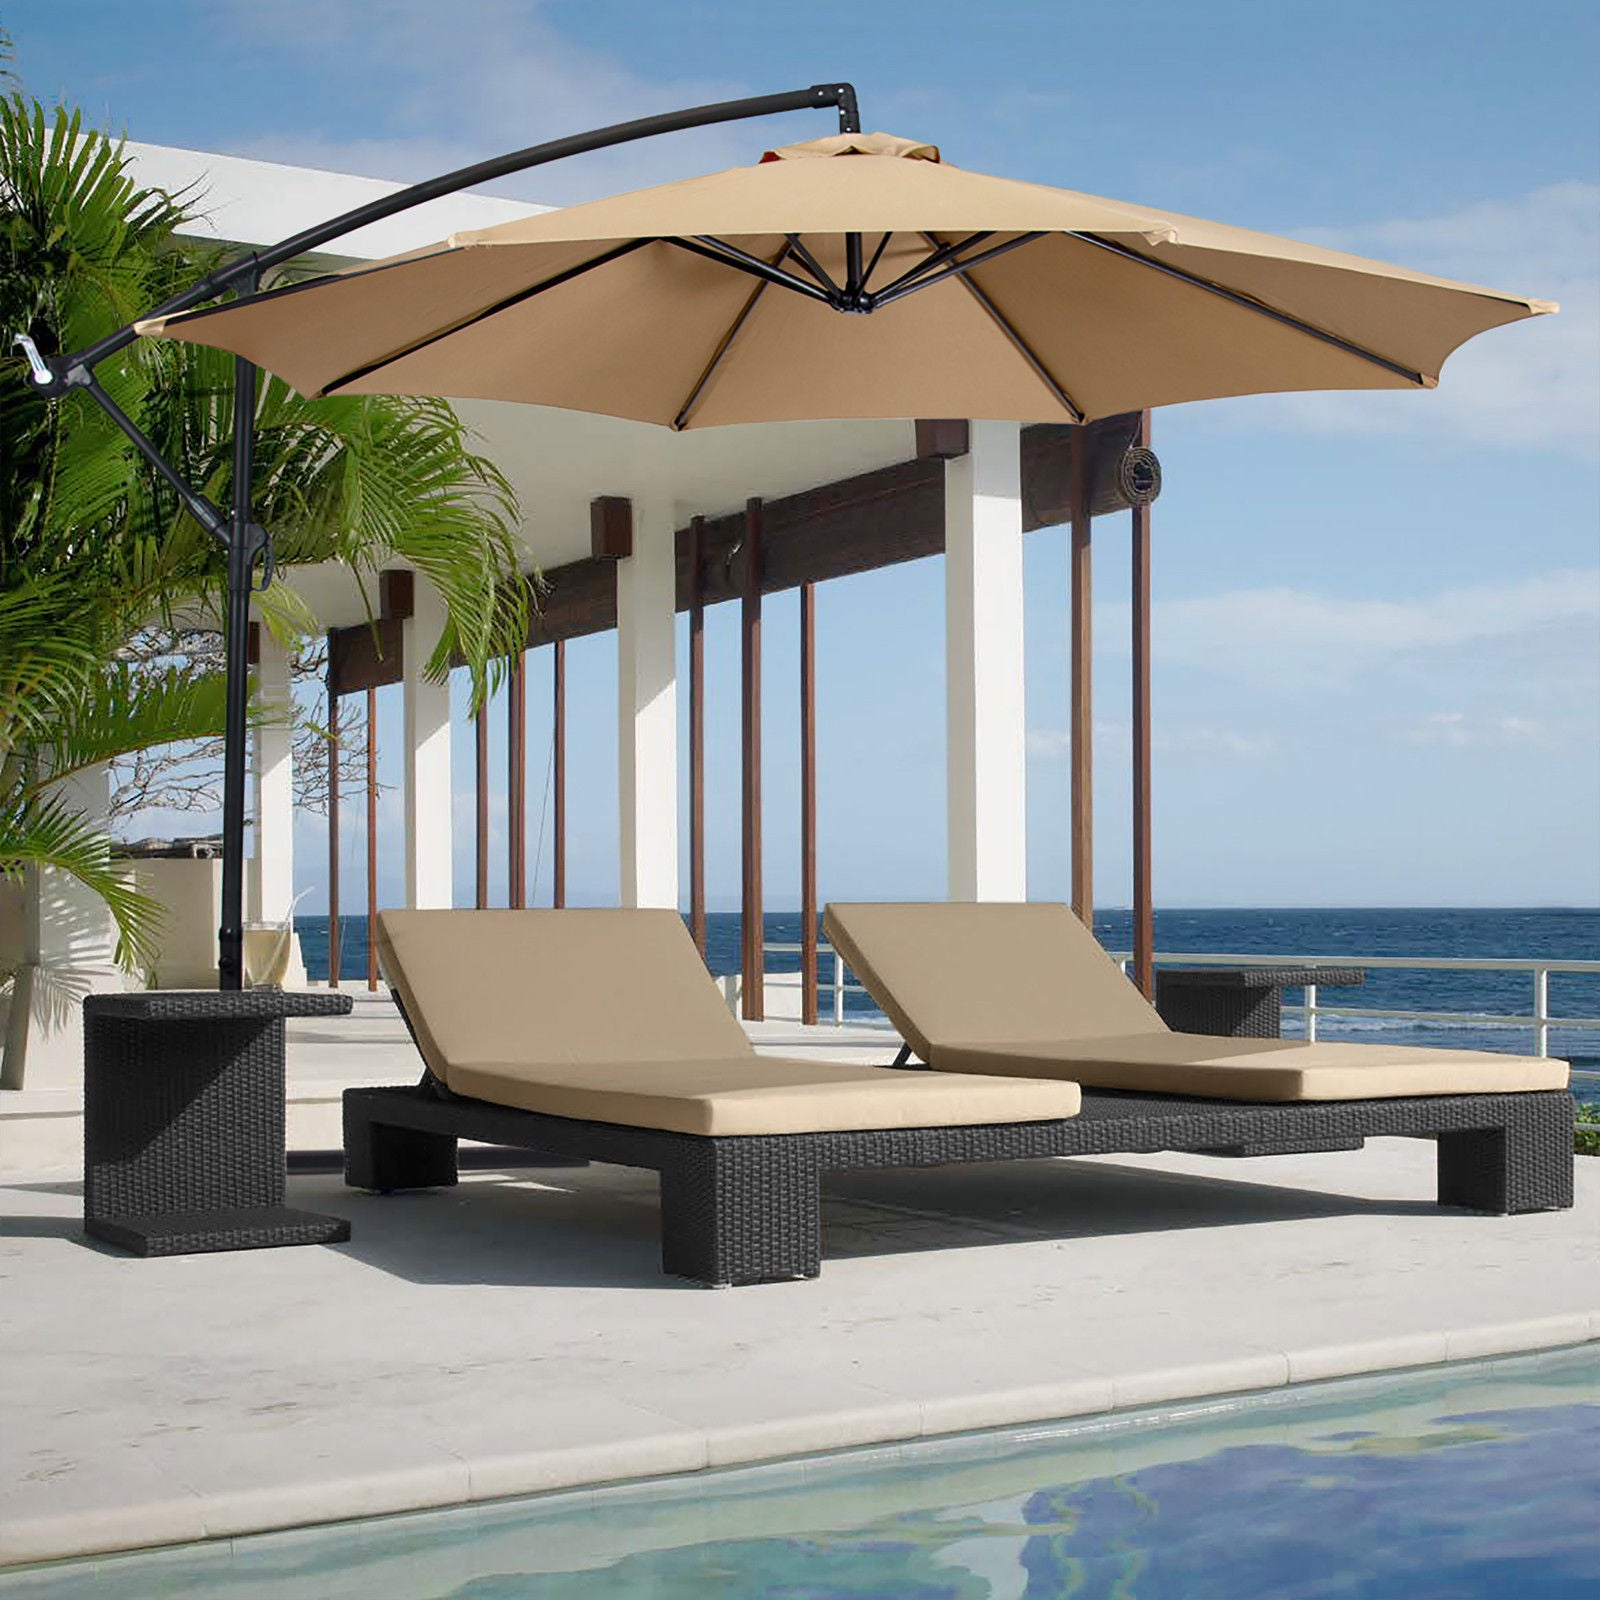 10 Cantilever Patio Umbrella